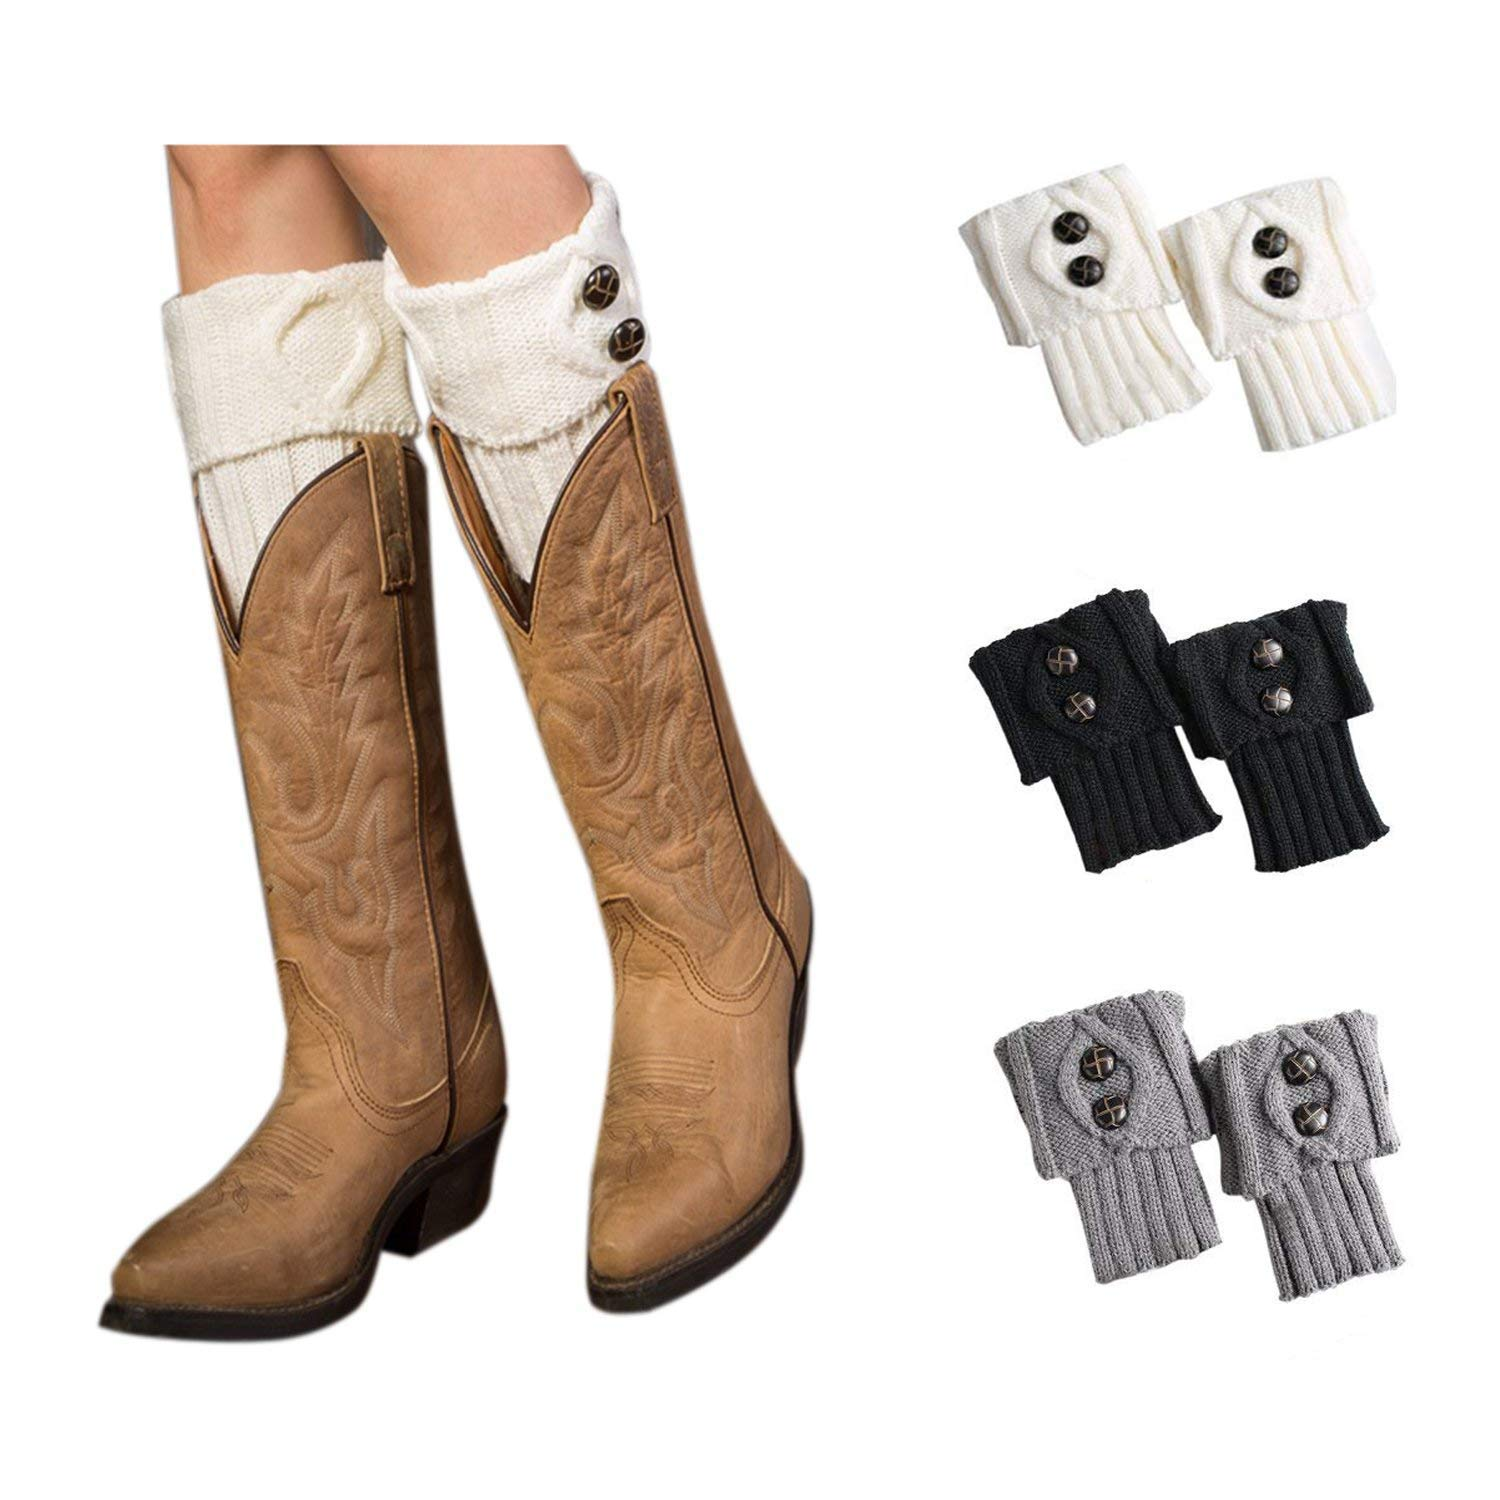 4YOUALL 3 Pairs Womens Short Boot Leg Cuffs, Crochet Knitted Leg Warmers Topper Boot Socks for Women (3 Pairs-Black White Grey)